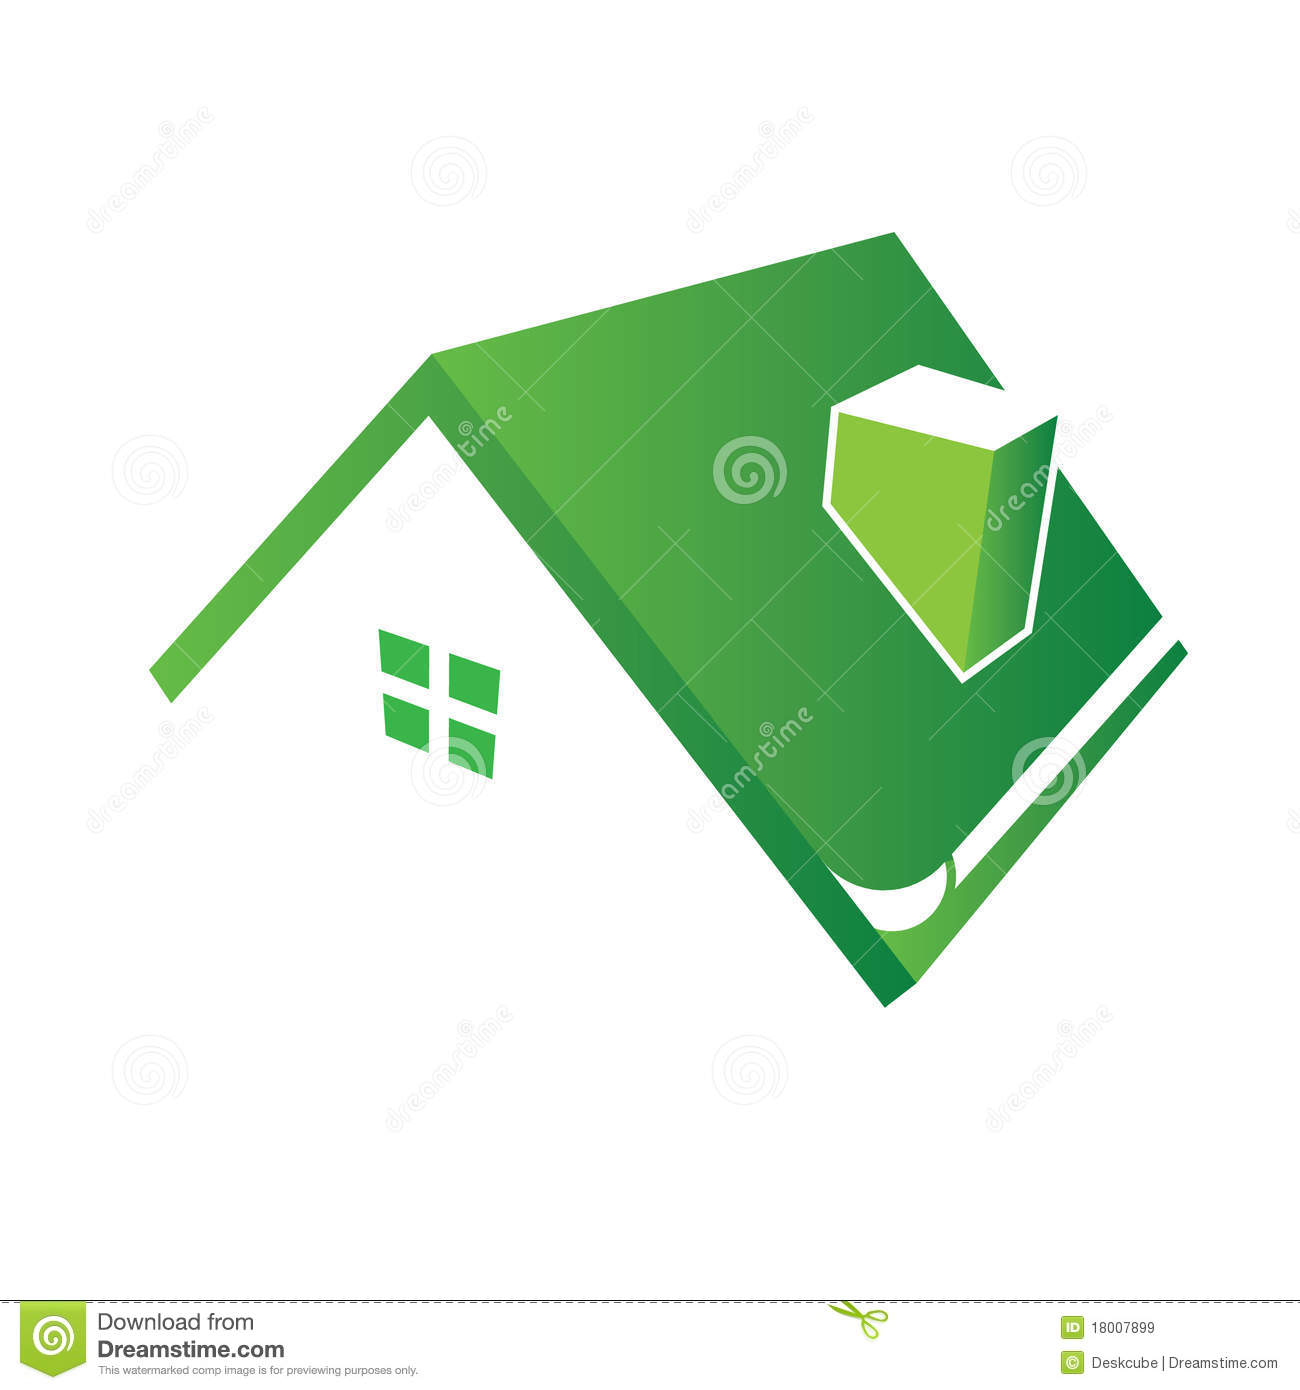 Roof clipart #8, Download drawings